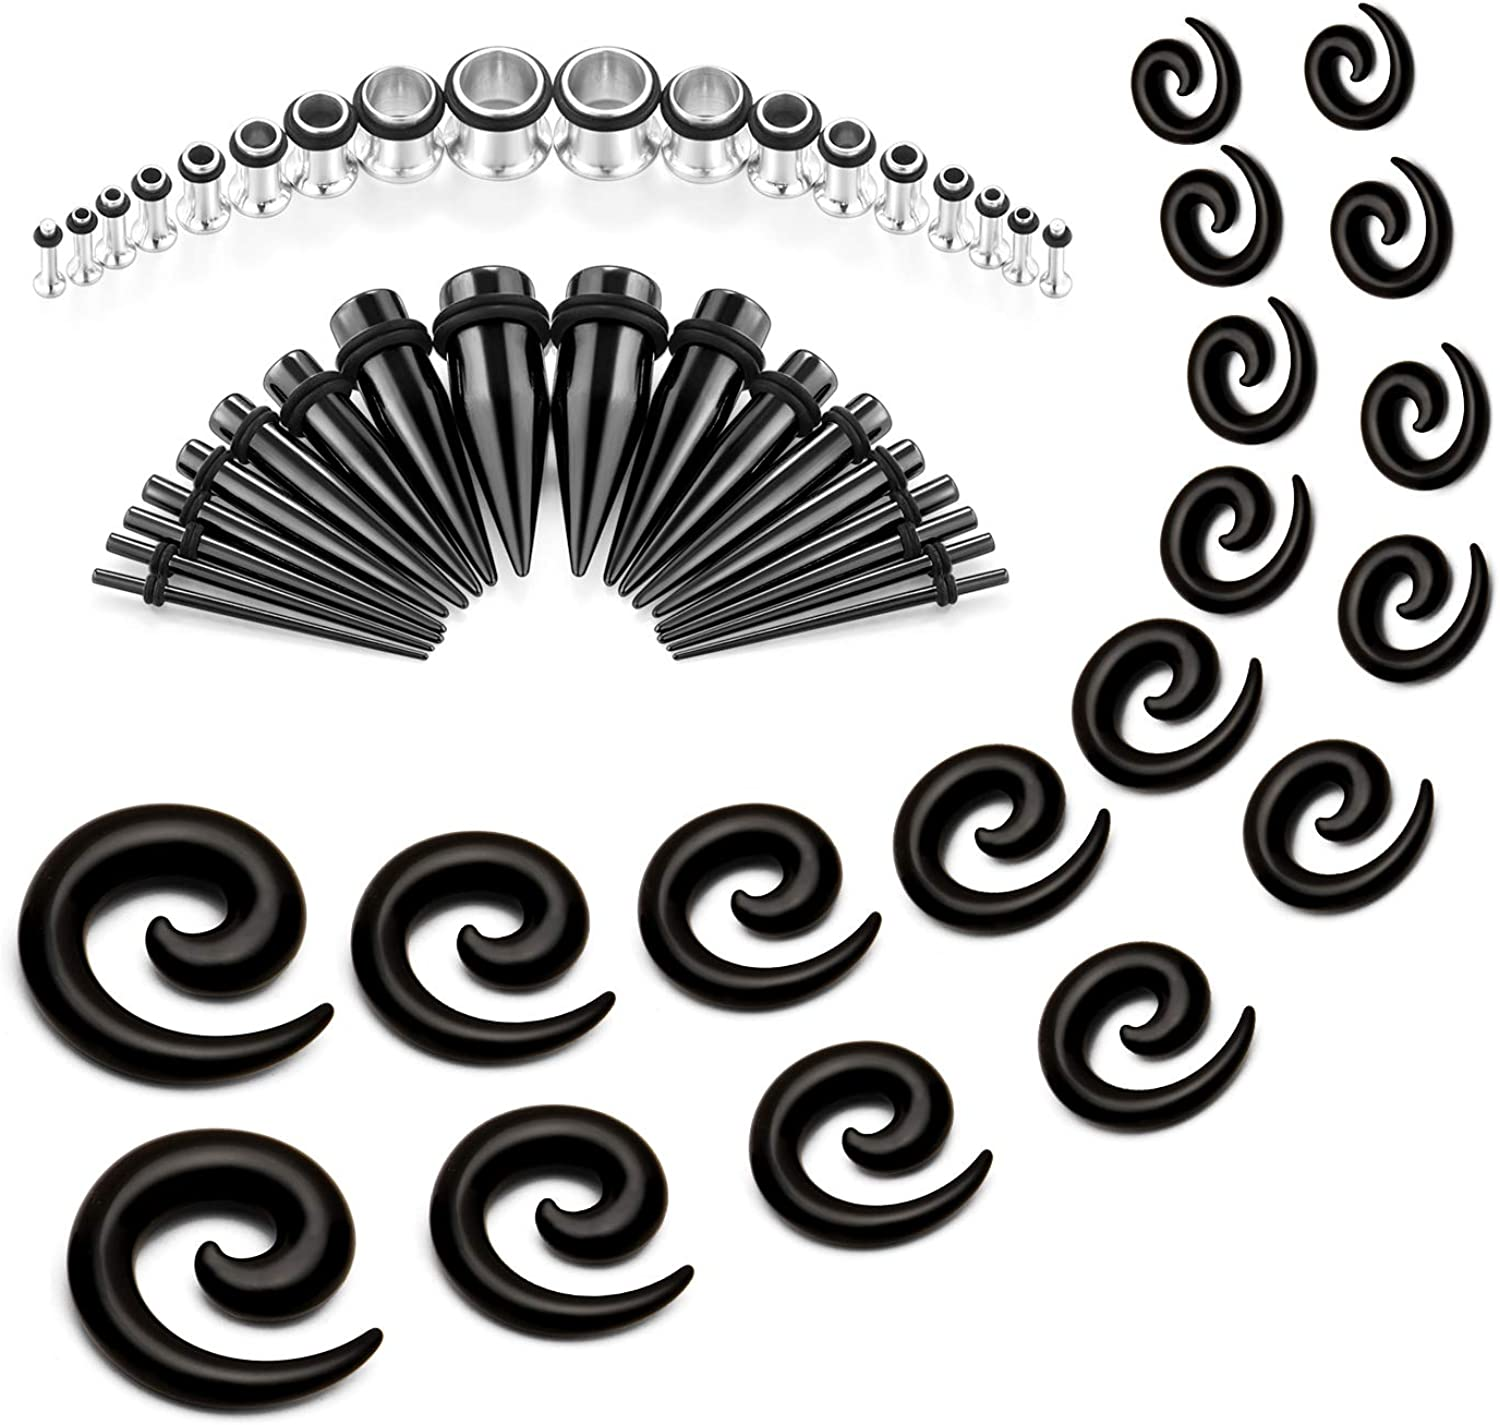 Rajnard Ear Stretching Kit 46-54 Pcs 14G-00G Acrylic /& Stainless Steel Gauge Kit Spiral Tapers Tunnels Plugs Ear Gauge Stretching Kit